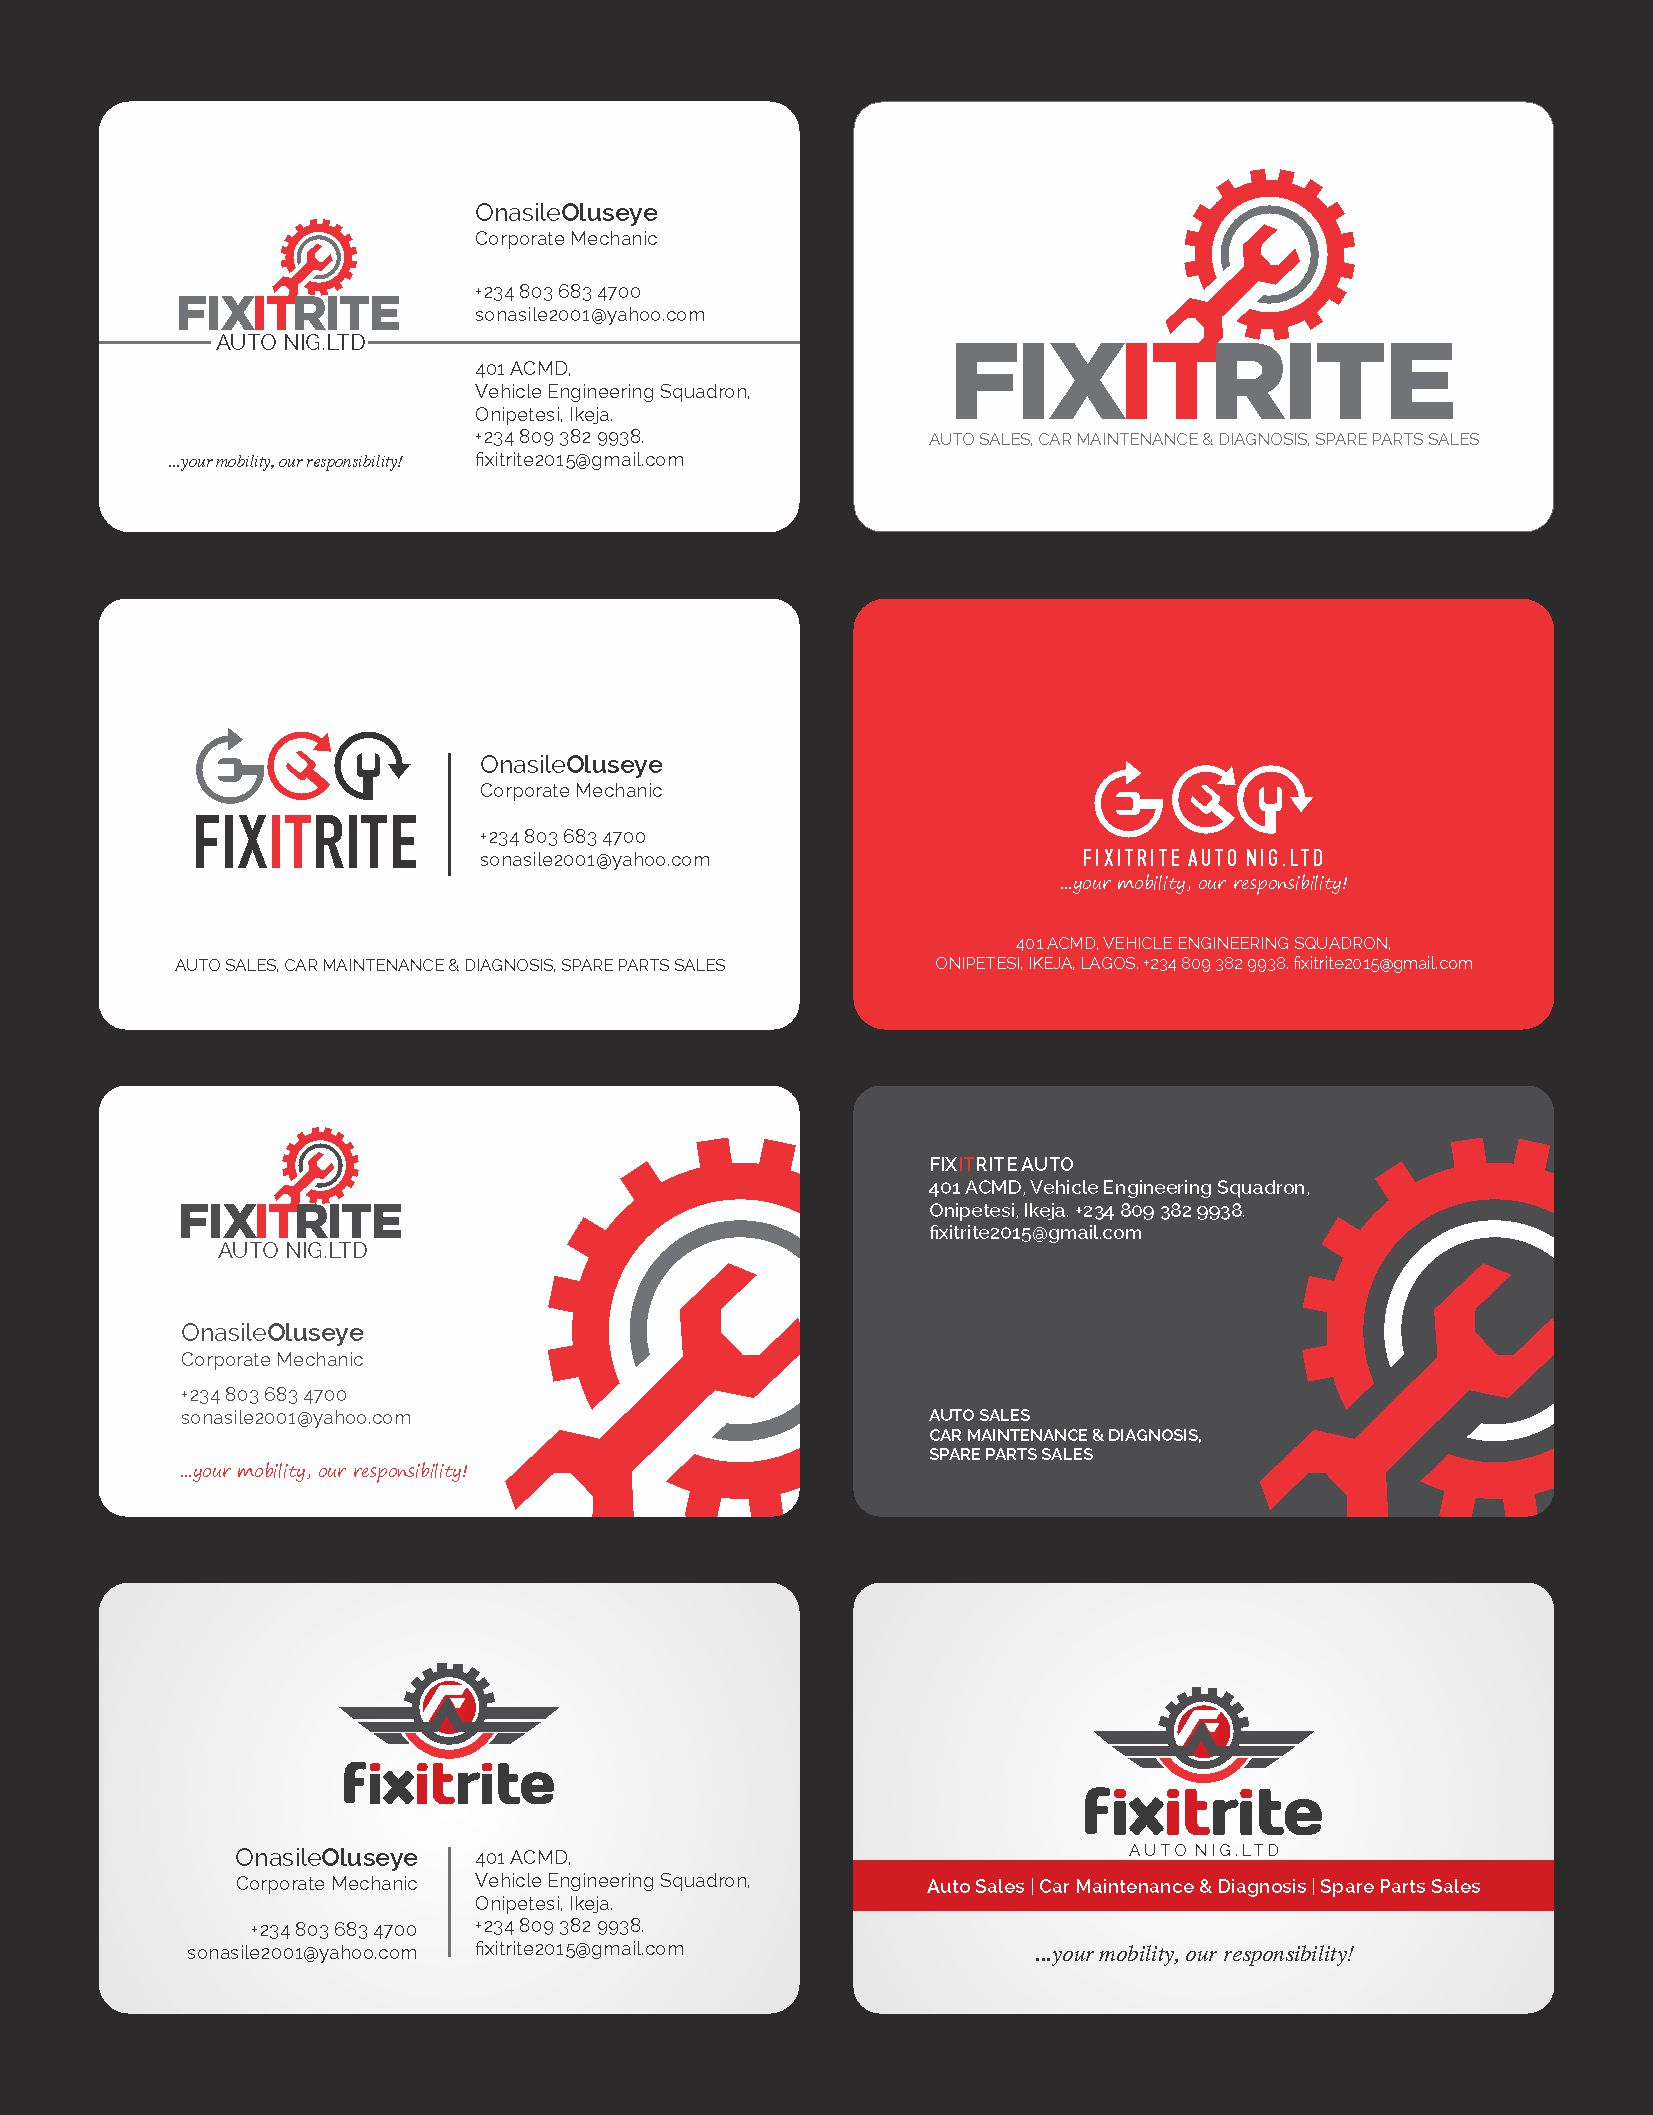 Business Cards Automotive Sales Image collections - Card Design And ...